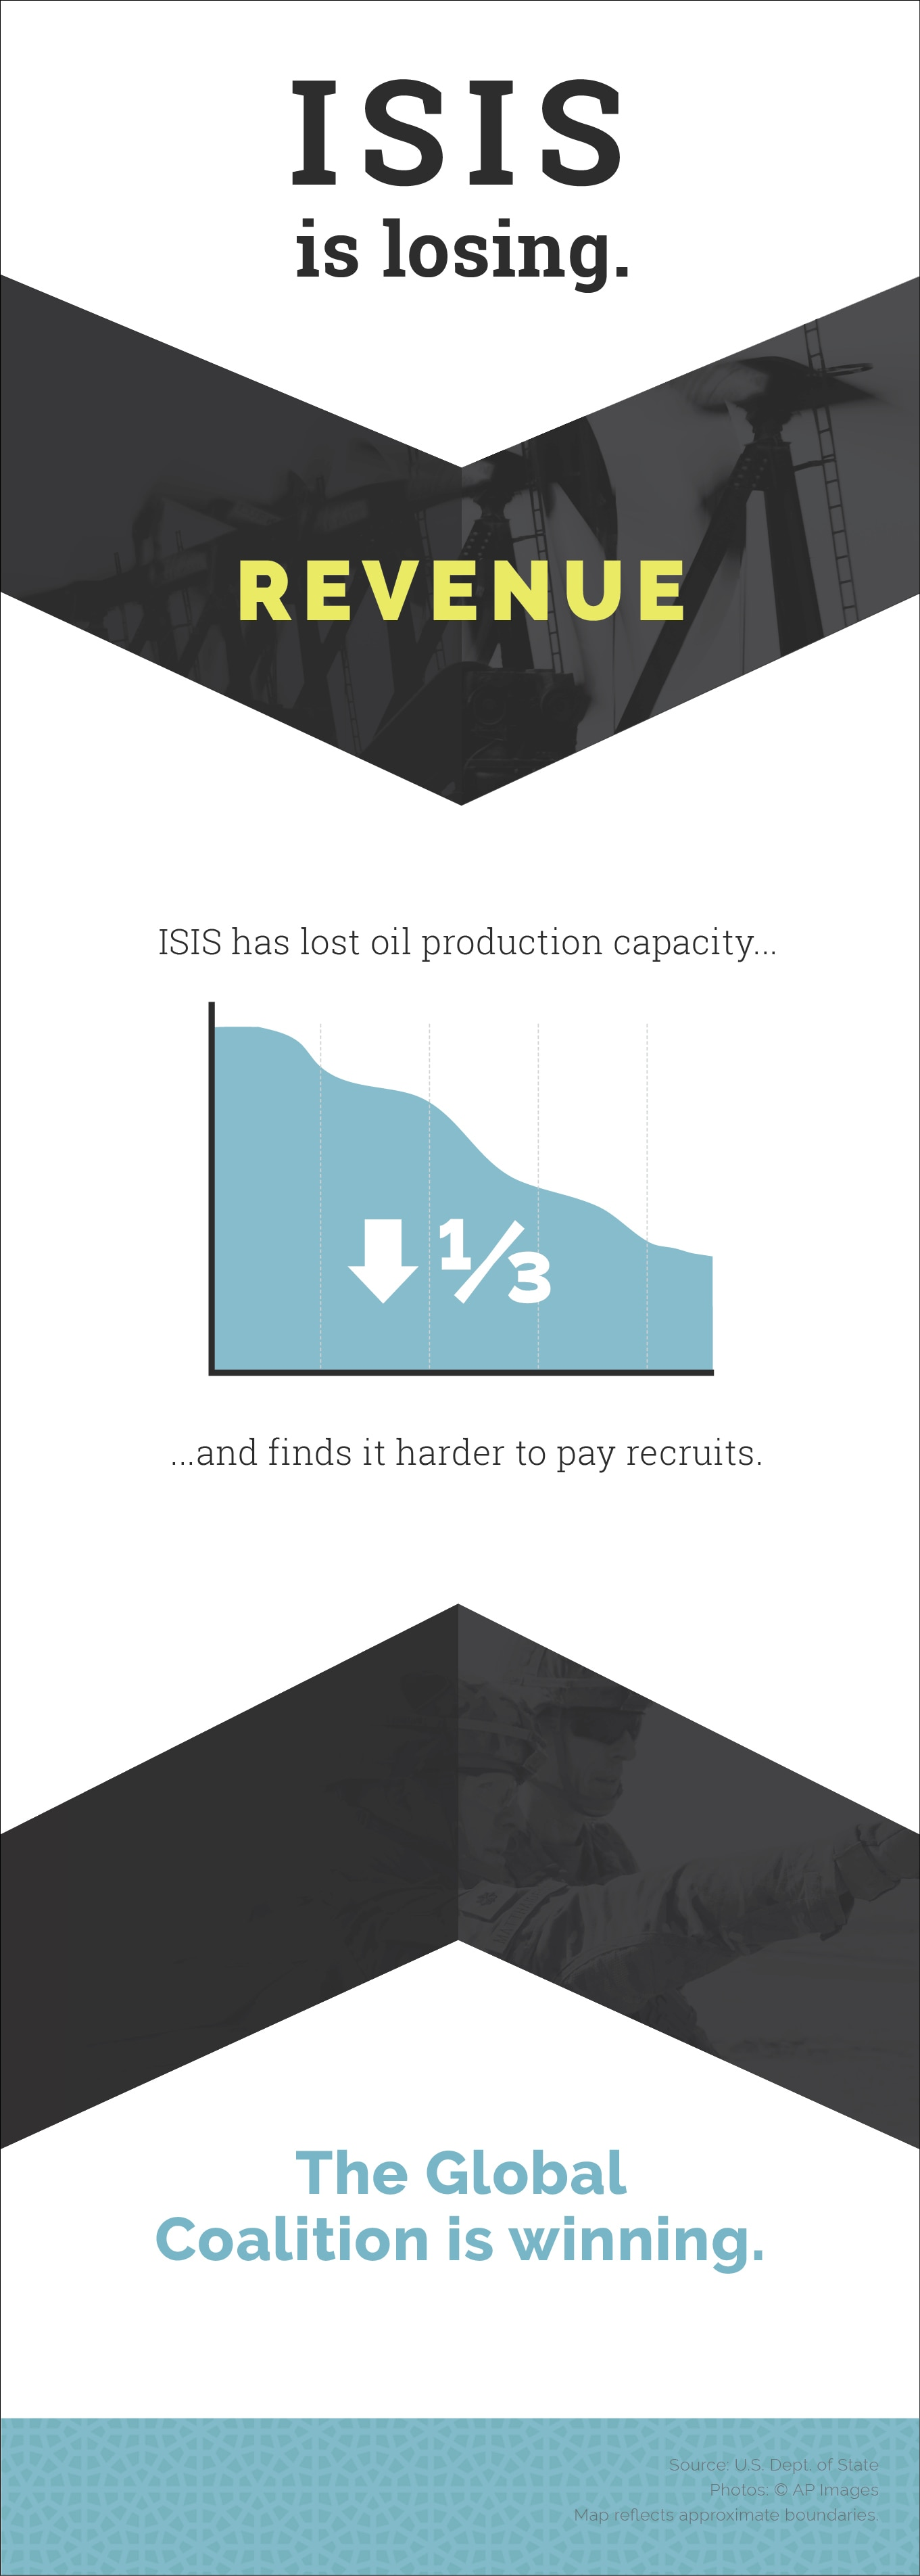 Graphic showing revenue lost by ISIS (State Dept.)